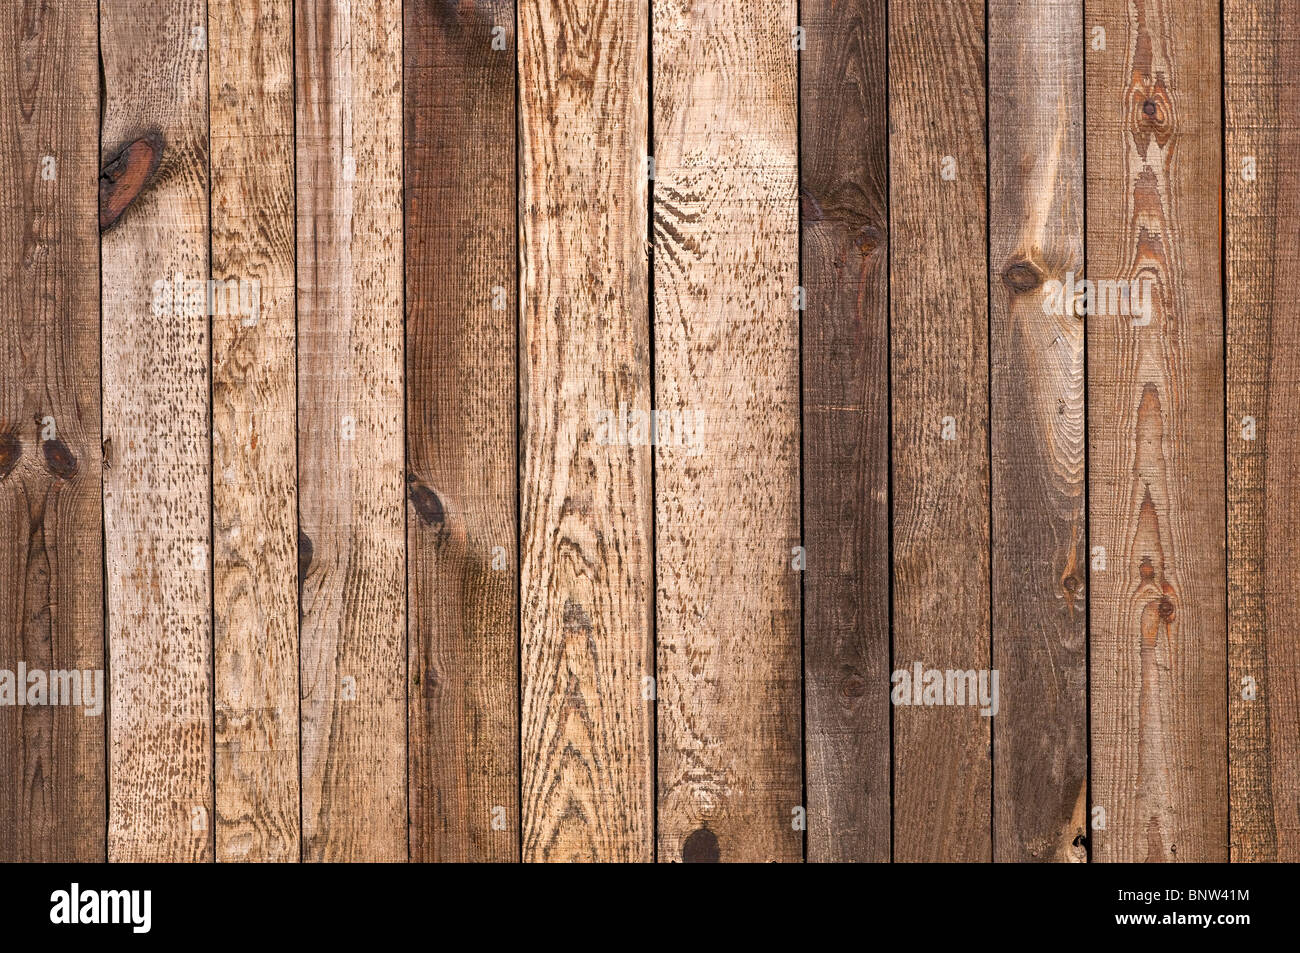 Stained, weathered softwood fence boards - France. - Stock Image